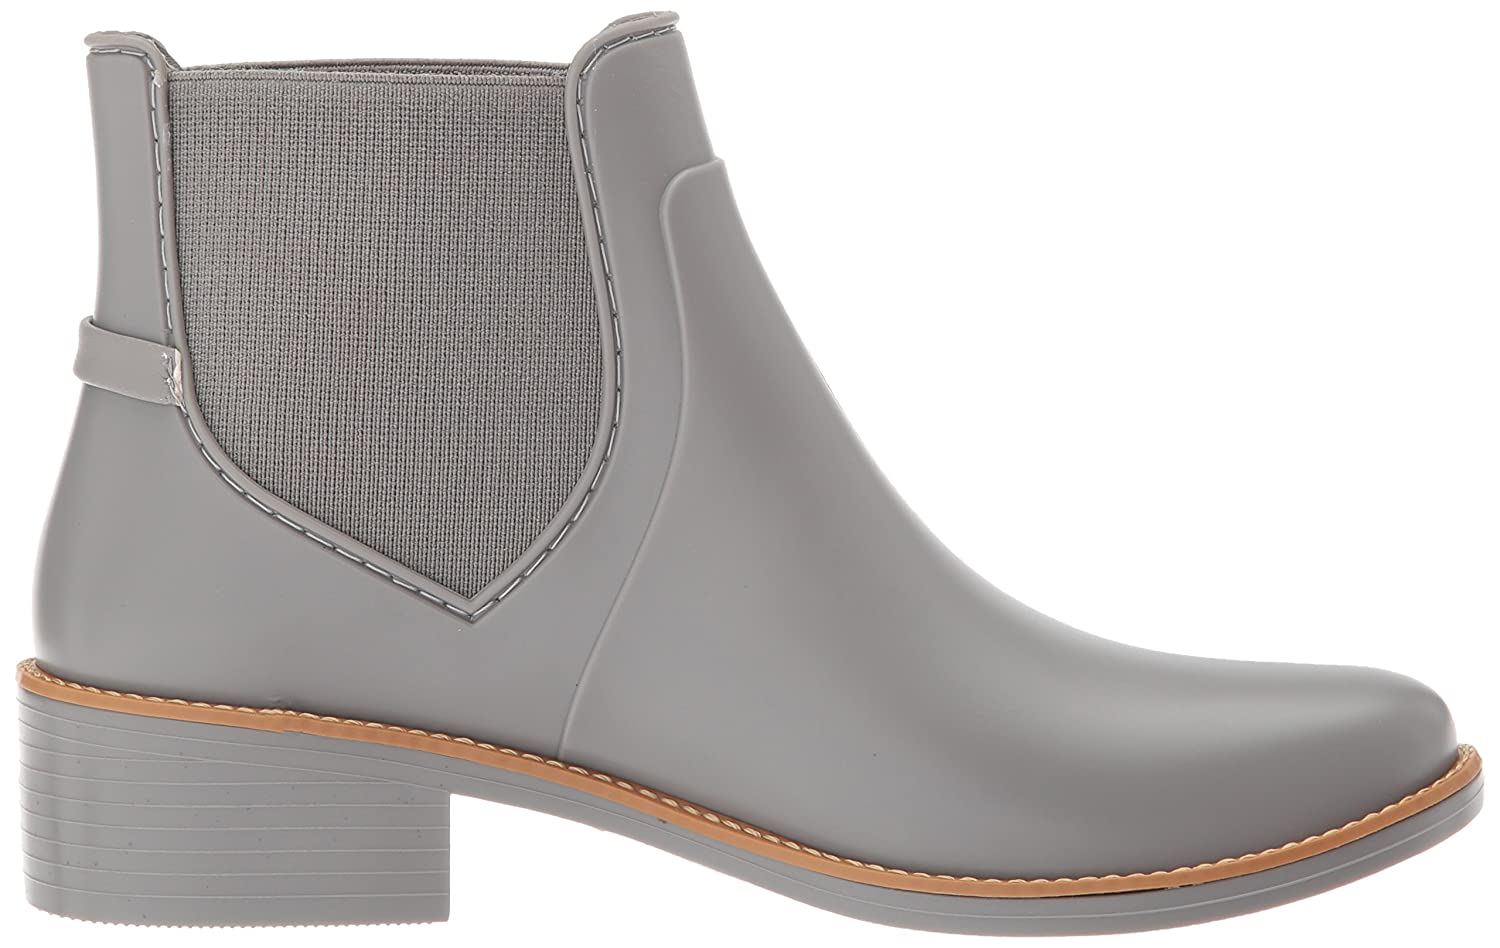 Bernardo Women's Pansie Rain Boot Rubber B06XYGT96F 6 B(M) US|Grey Rubber Boot 479013